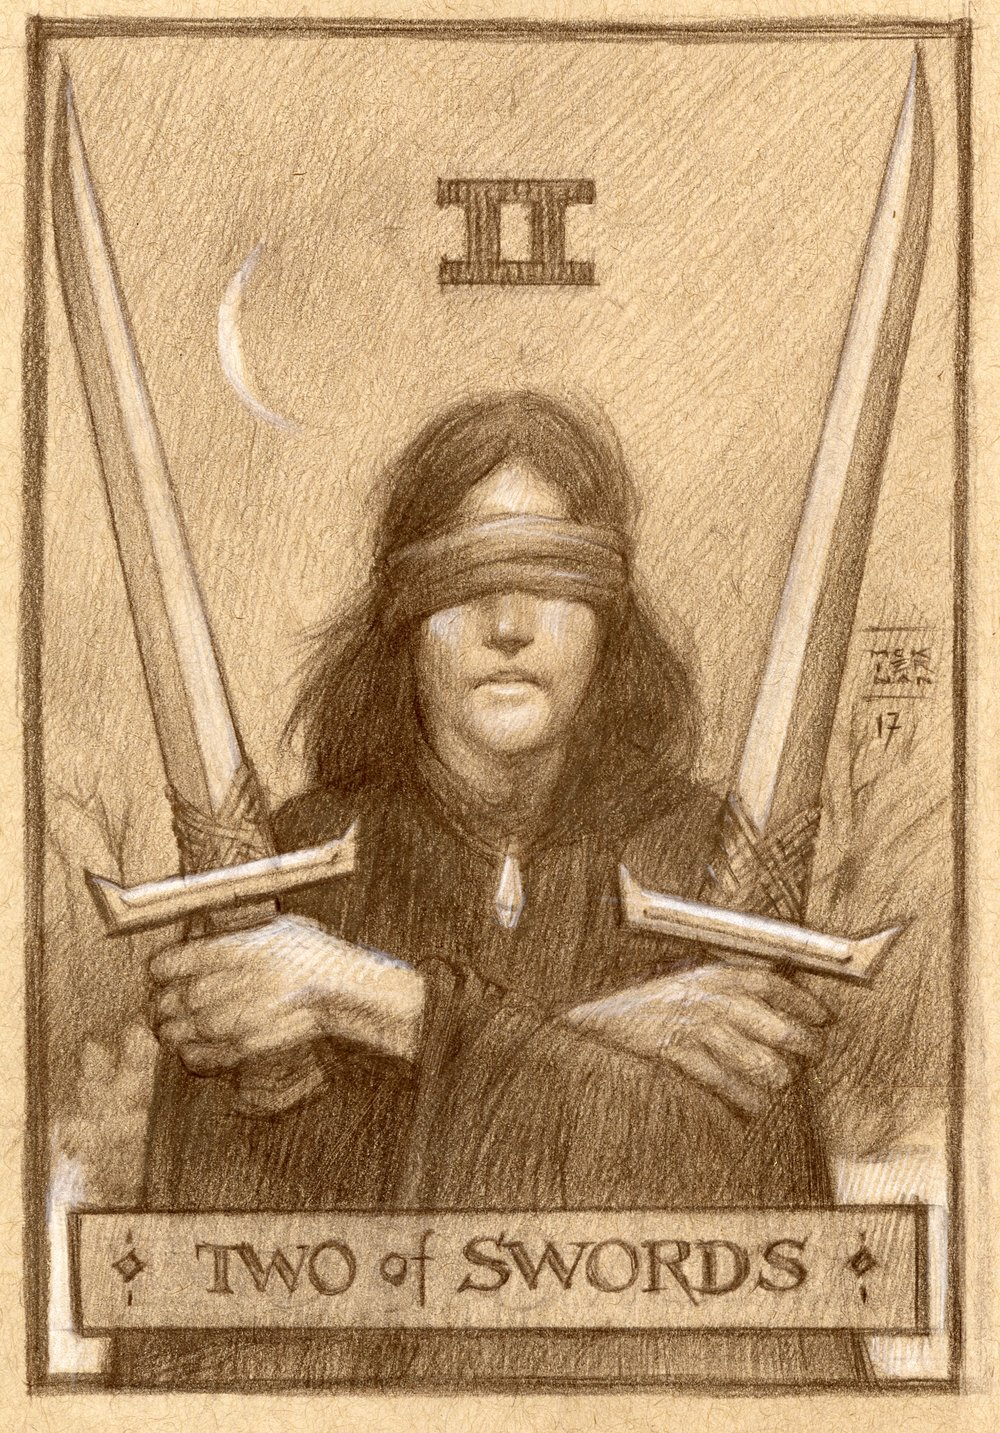 Jim McKiernan - Two of Swords